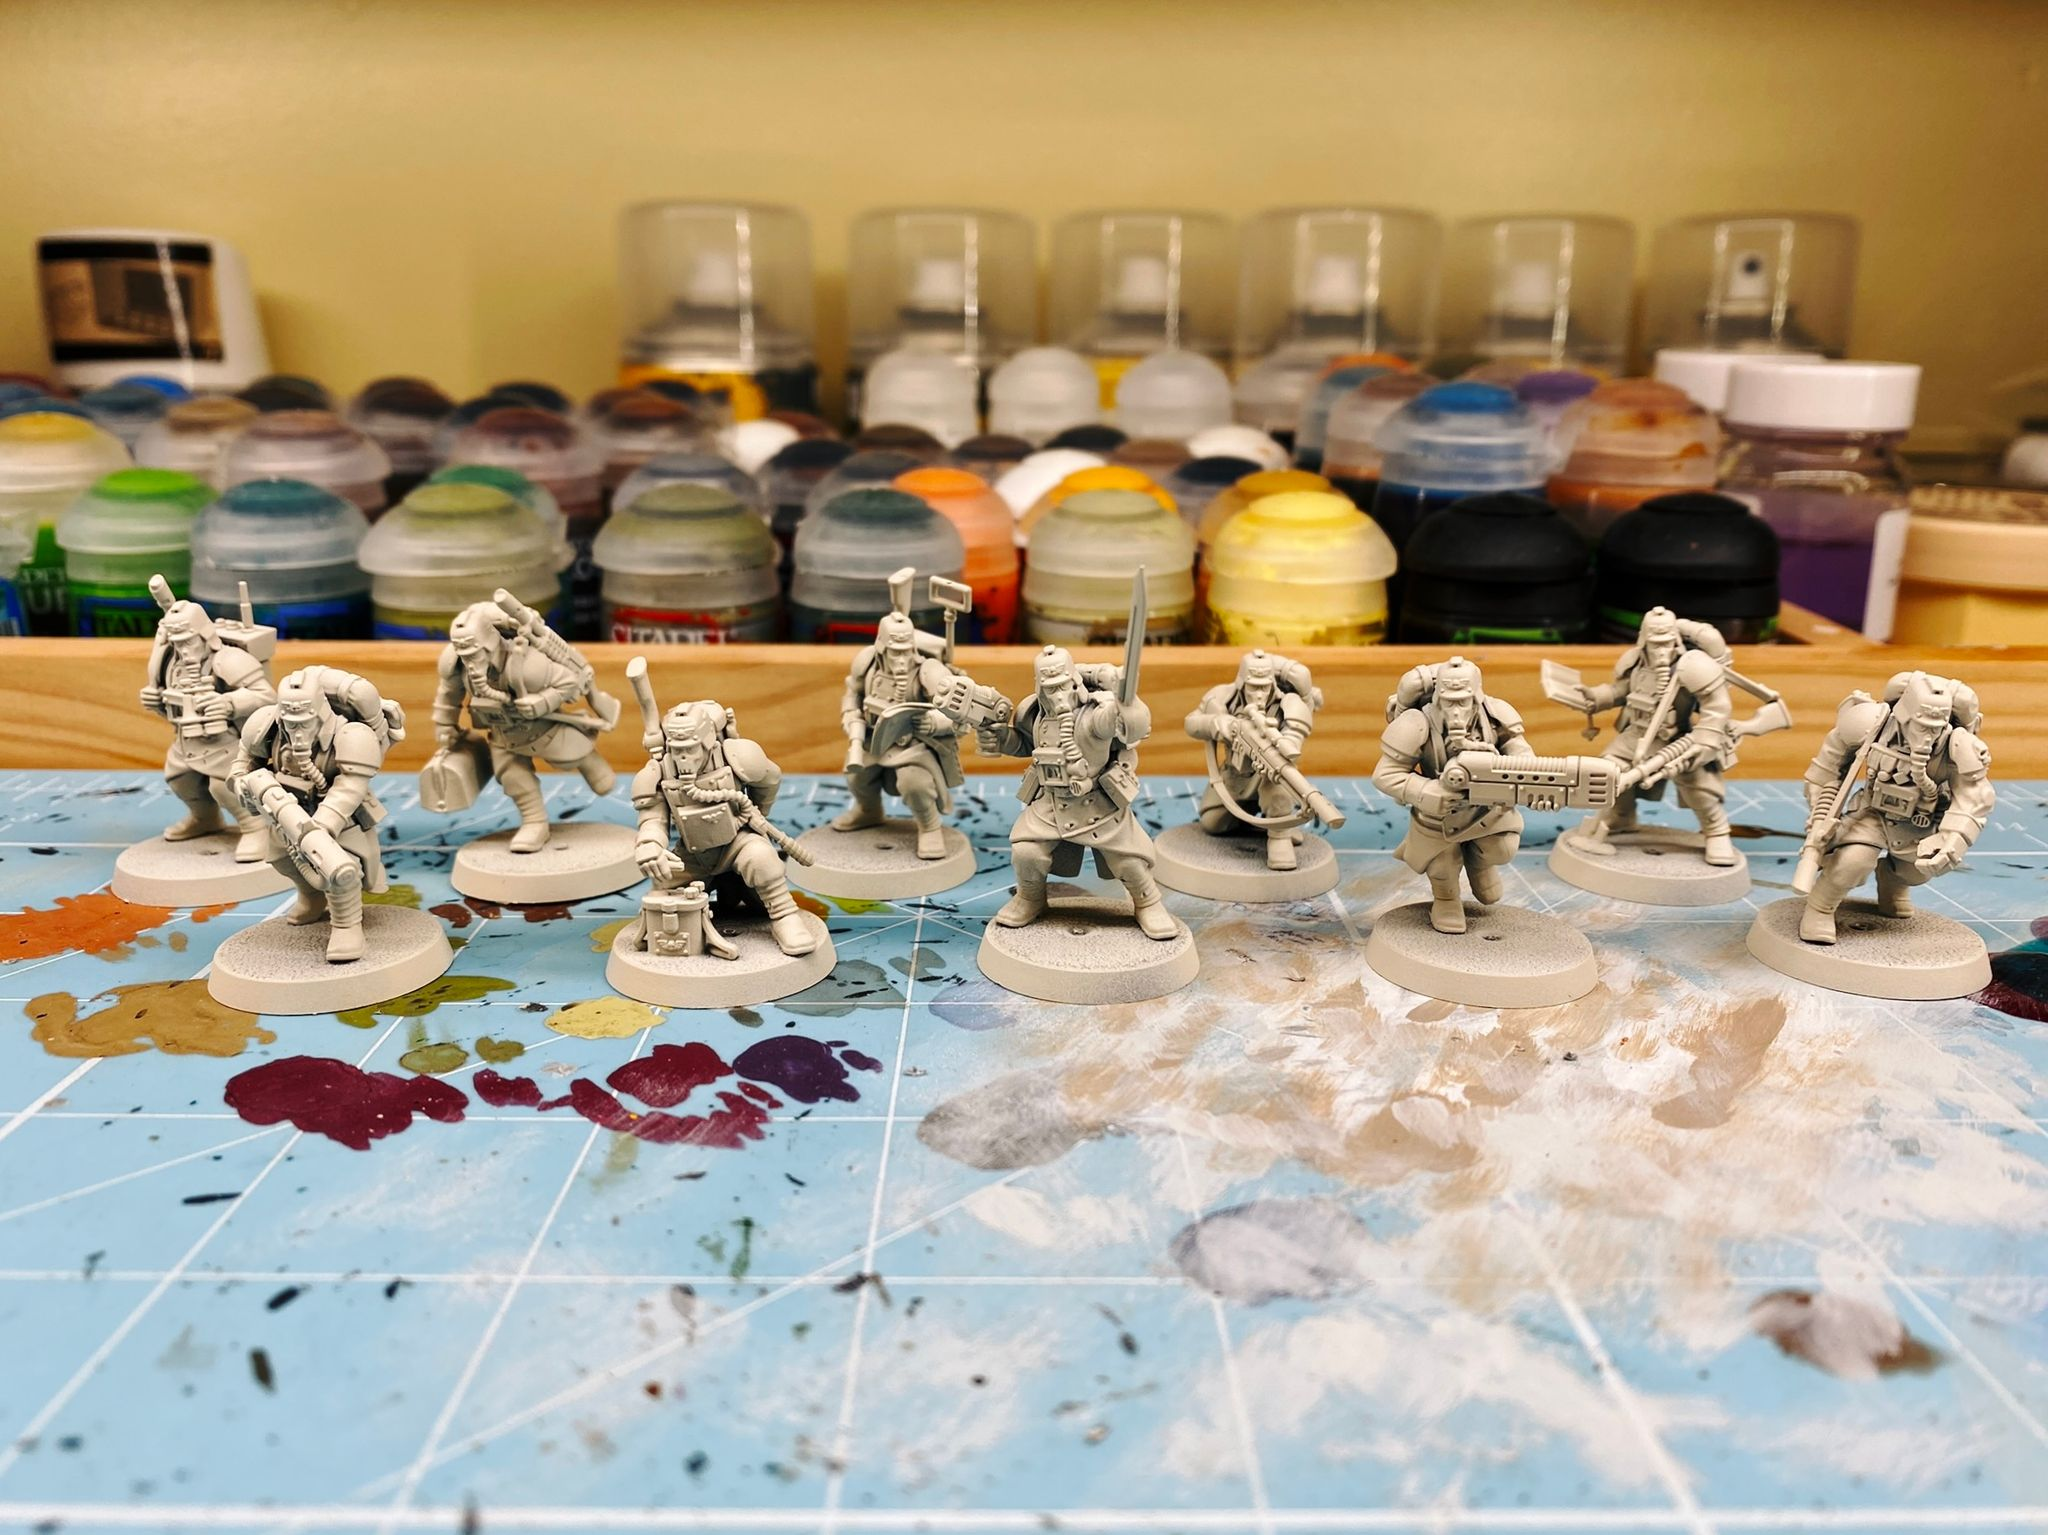 A photo of the ten Death Korps of Kreig miniatures from the Warhammer 40,000 Kill Team: Octarius box. They're all human but with big greatcloaks on and wearing gas masks. There's very much a World War 1 vibe going on.